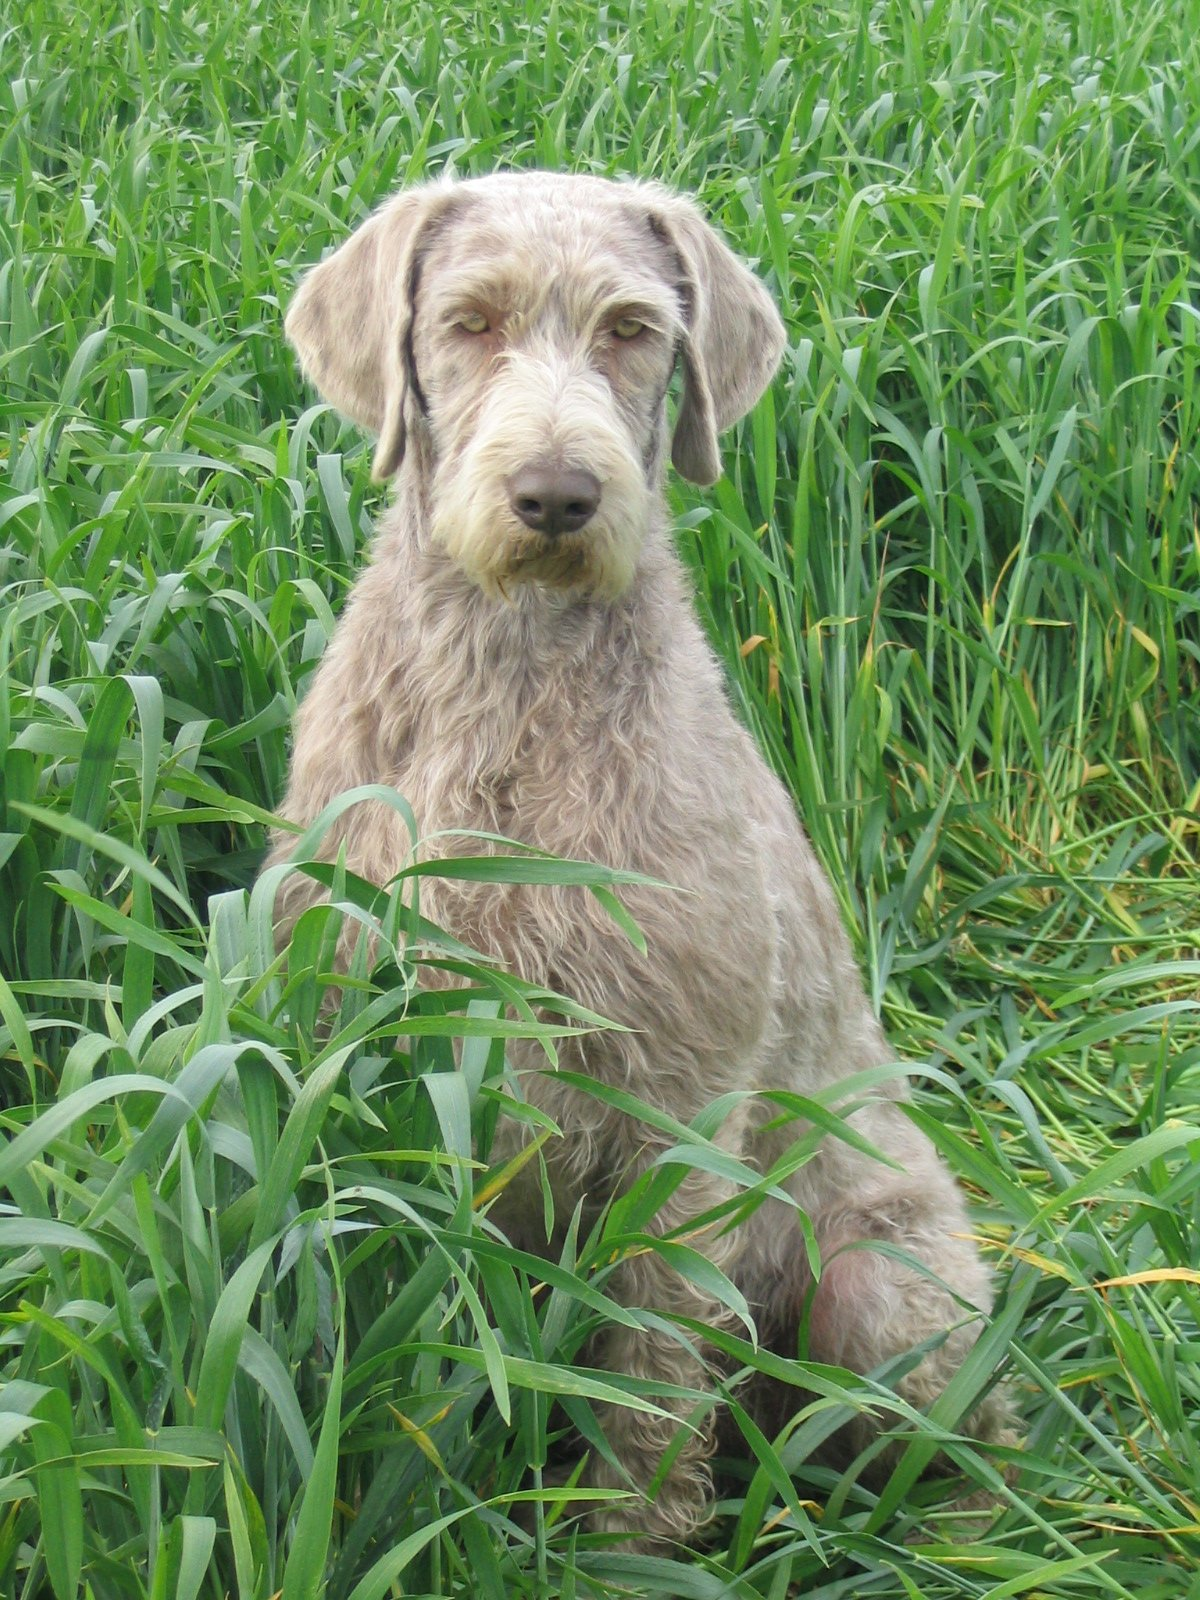 Slovakian Rough-haired Pointer in the grass wallpaper